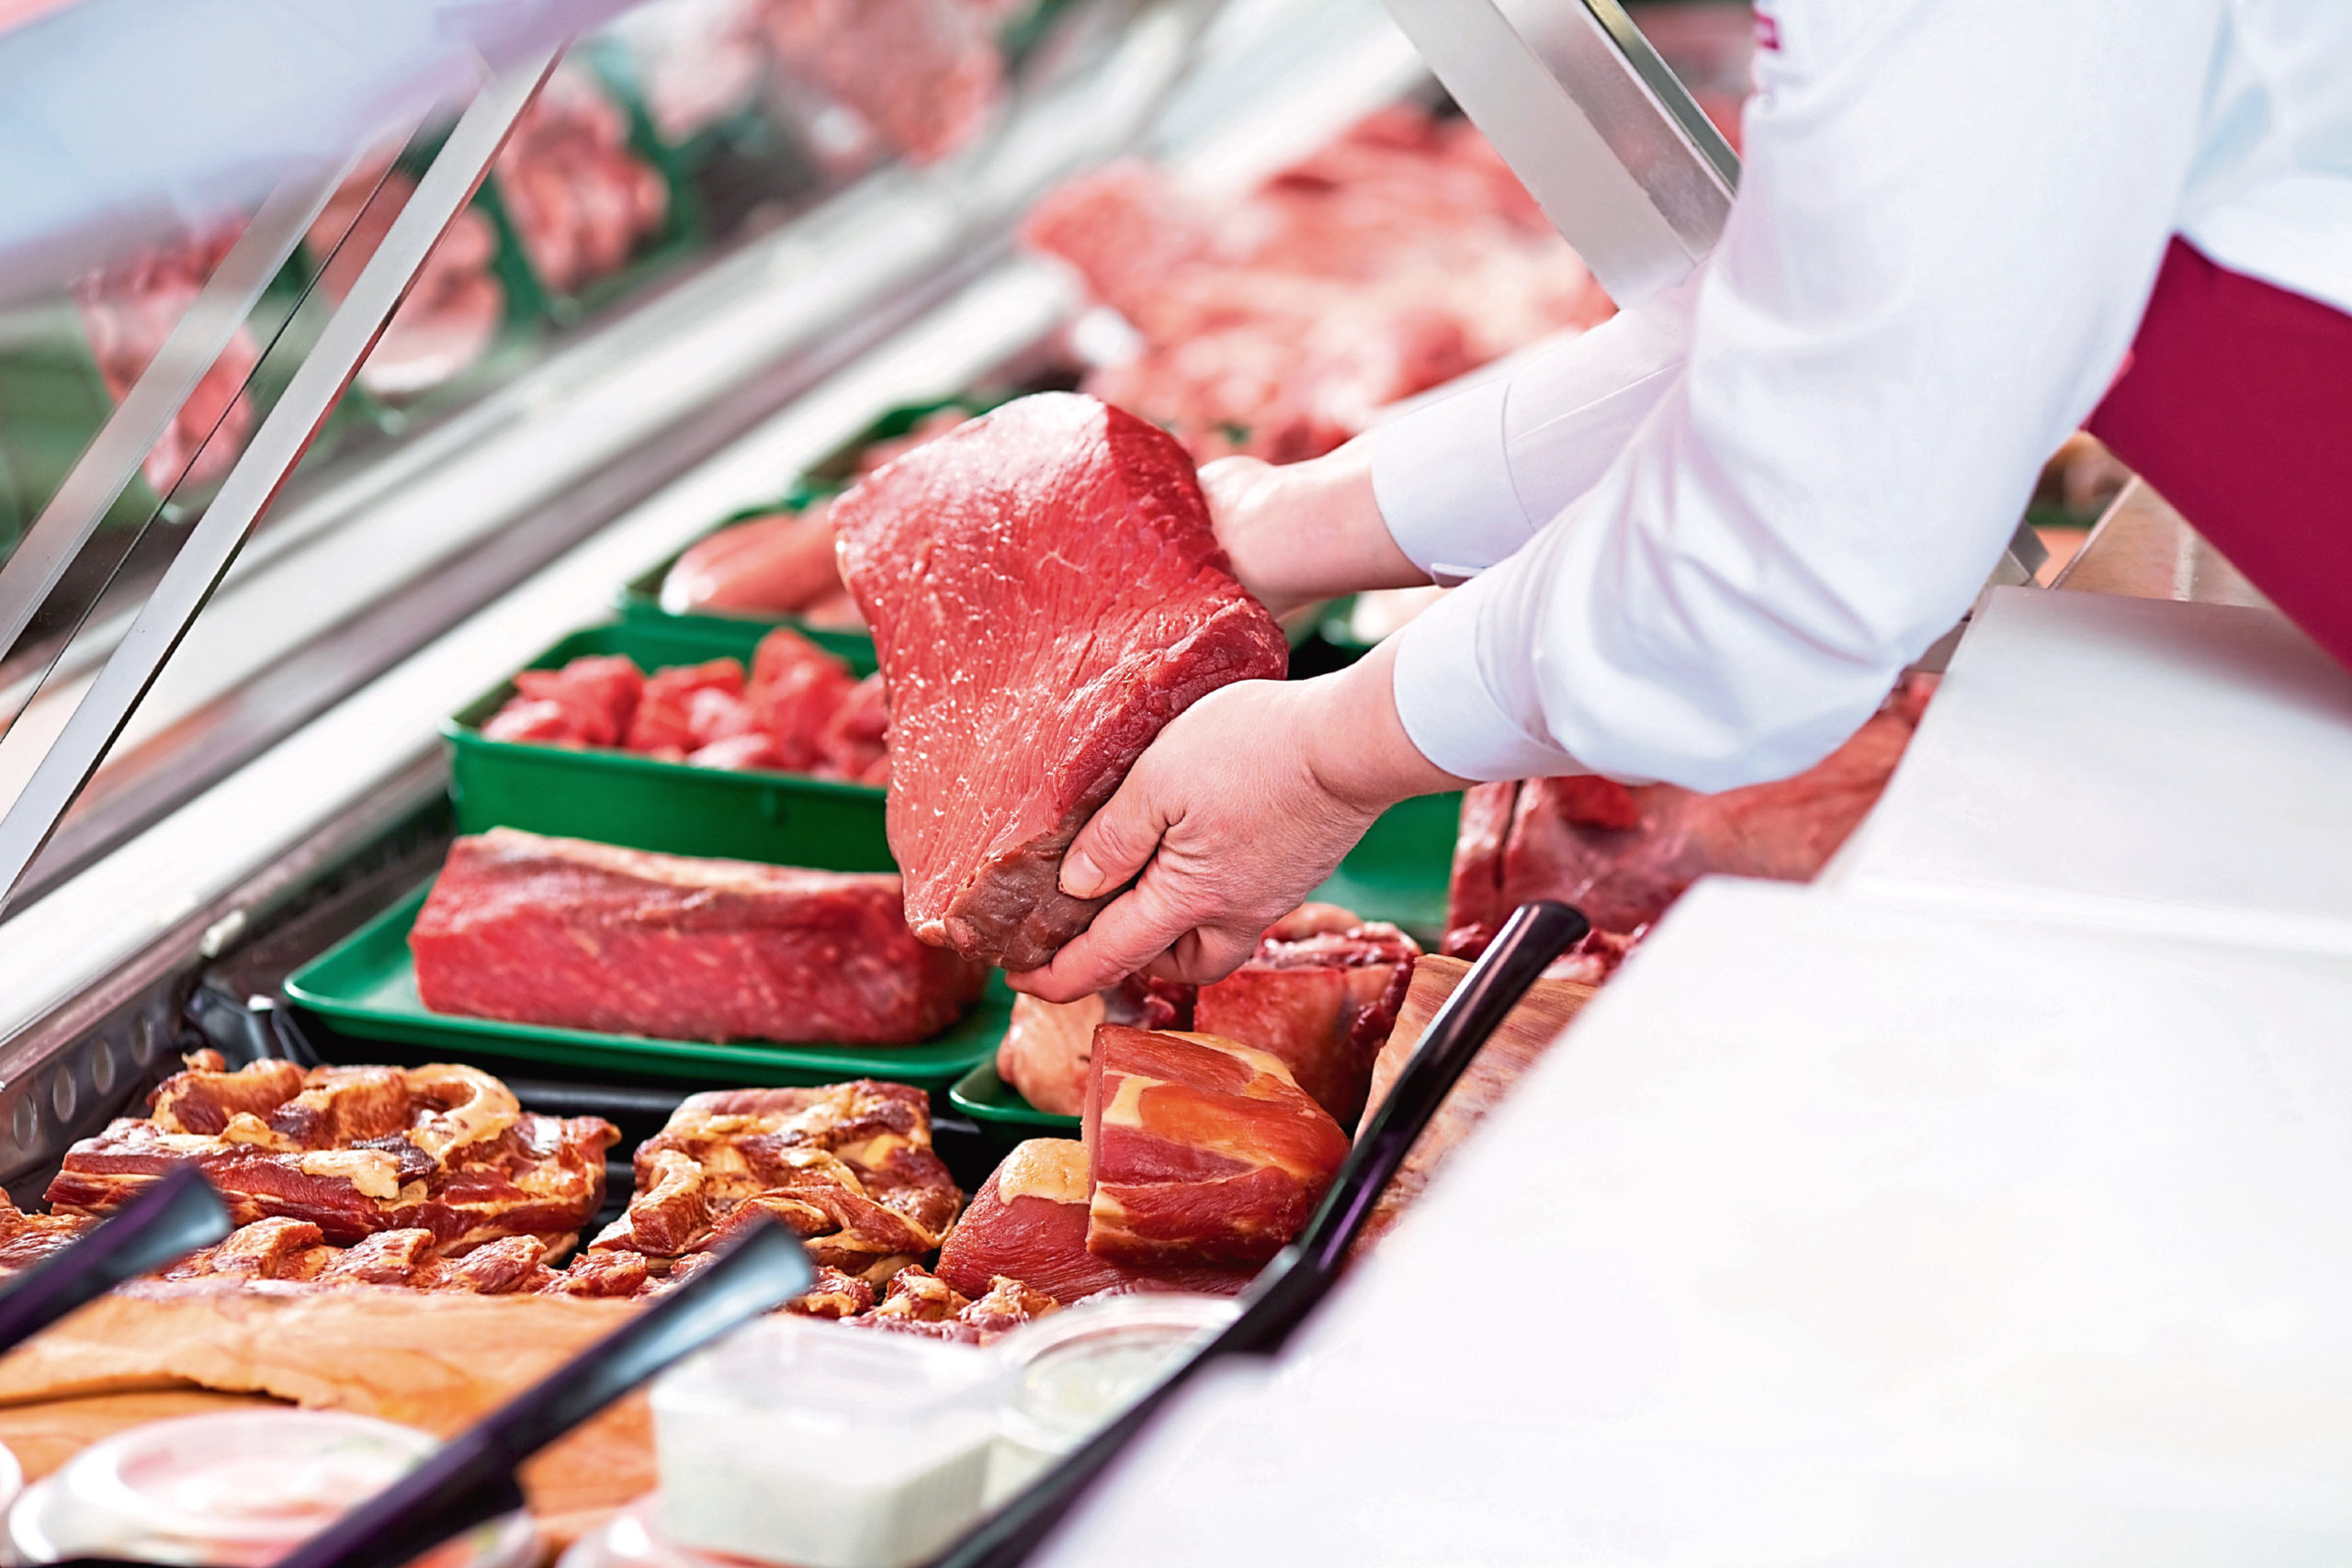 As Covid restrictions ease, shoppers are getting more choosy about the source of their meat.